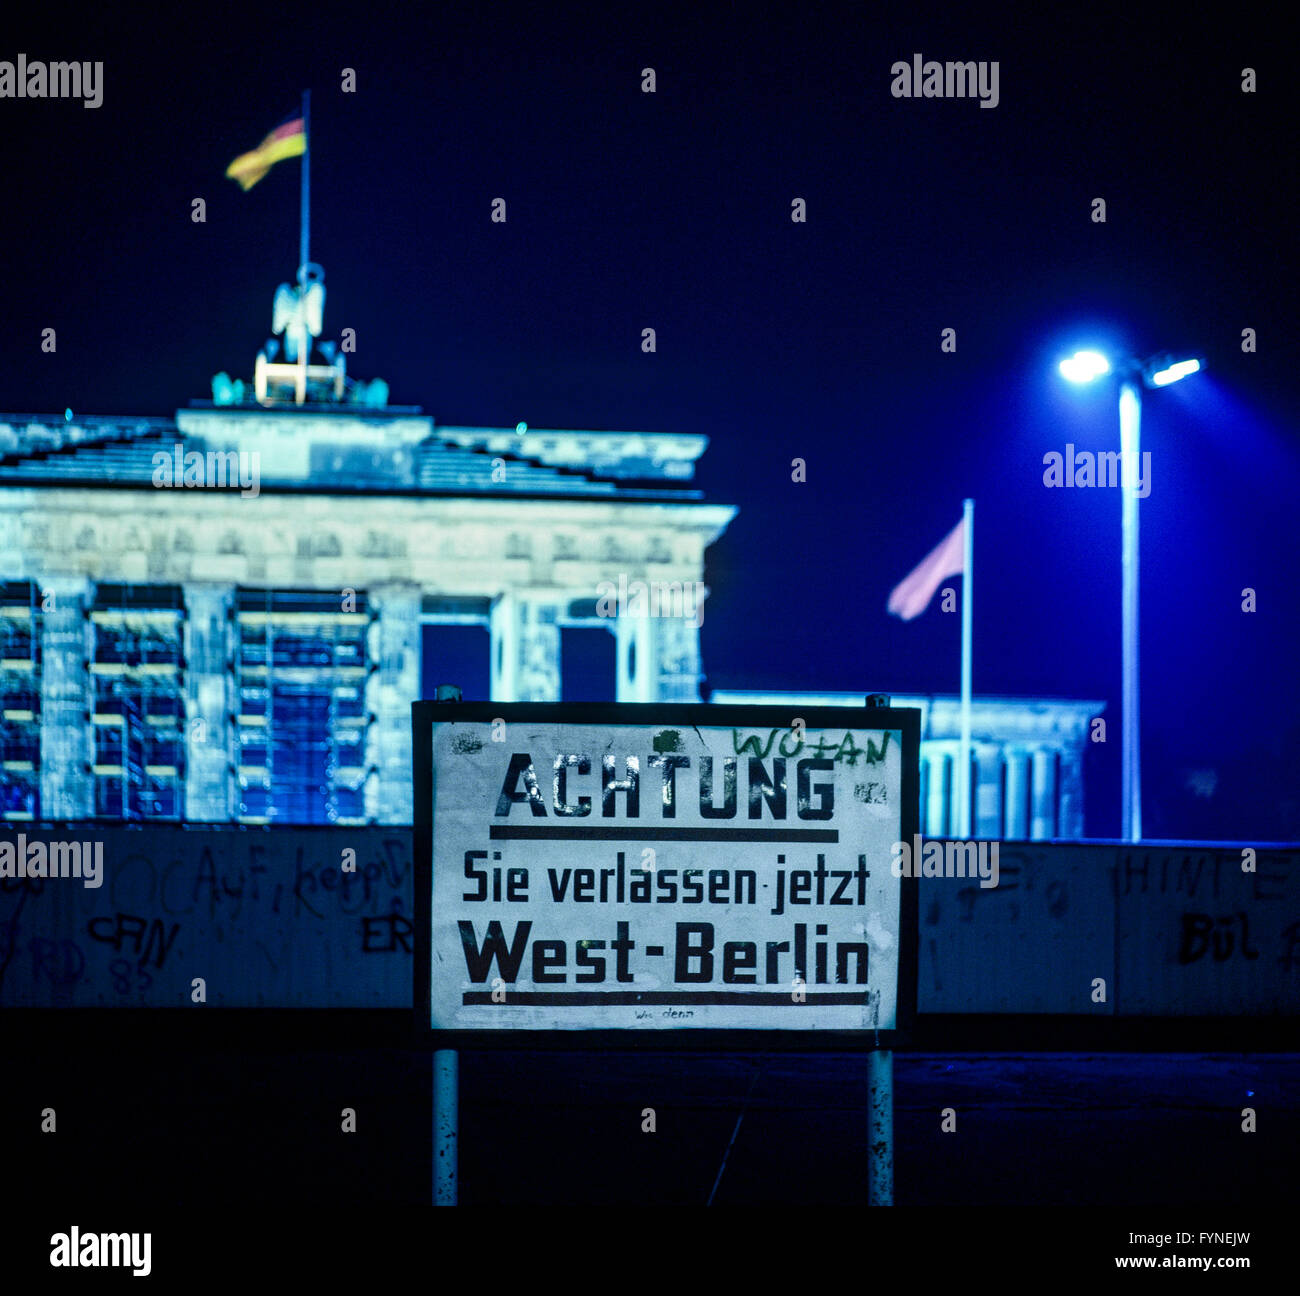 August 1986, leaving West Berlin warning sign front of the Berlin Wall, Brandenburg Gate at night in East Berlin, - Stock Image